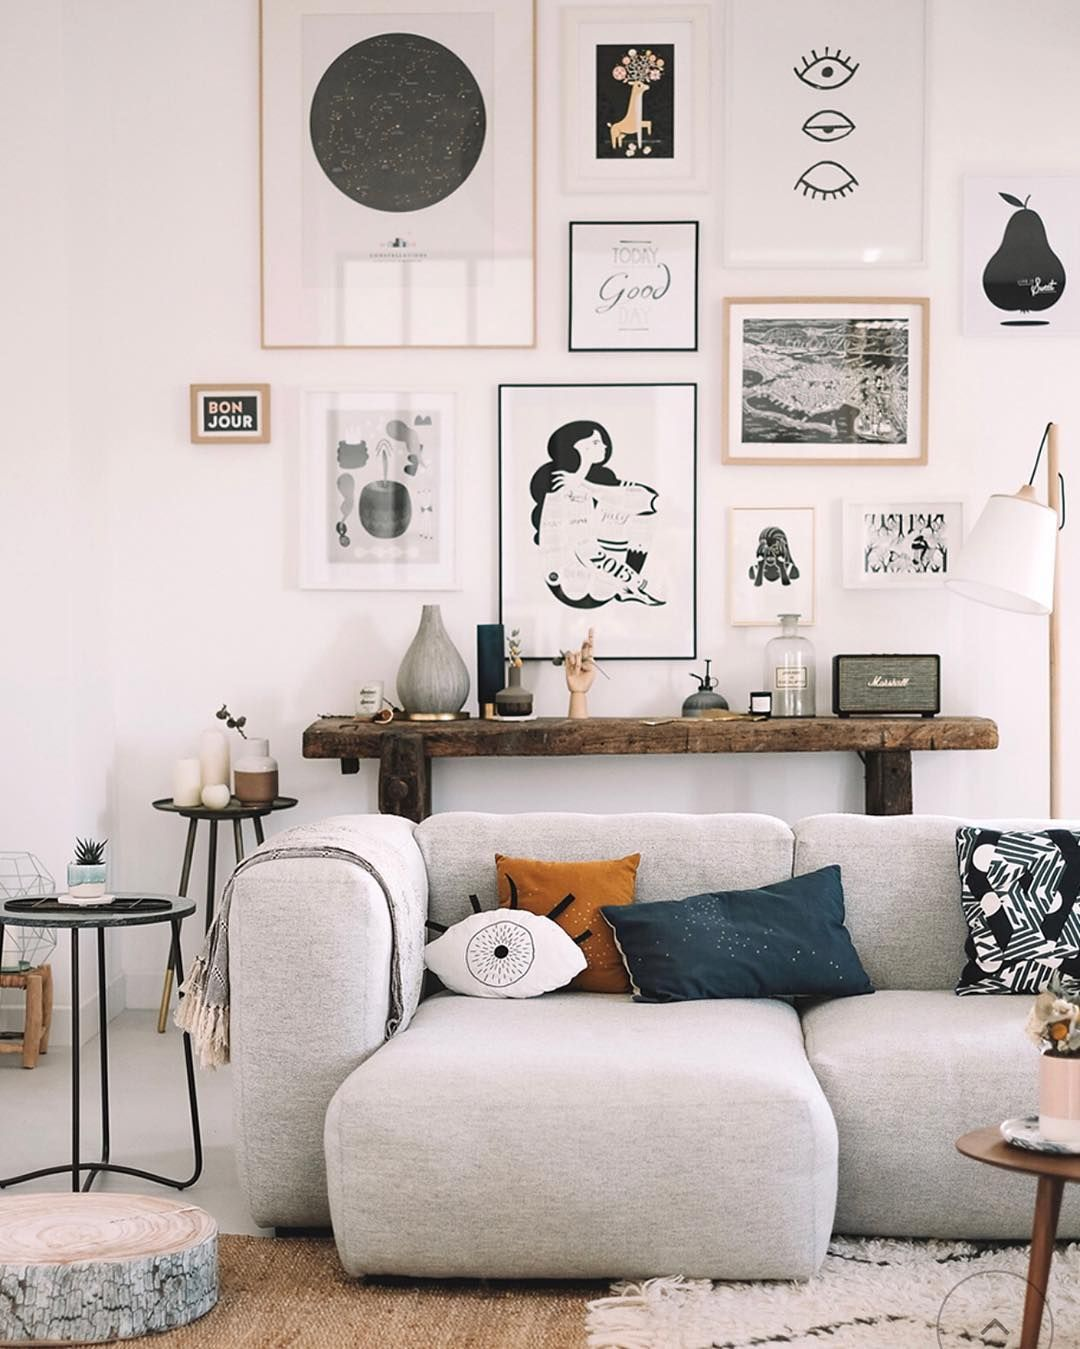 Interior With Vintage Details On Instagram Beautiful Mix Of Vintage And Modern Pinterest I Living Room Decor Apartment Living Decor Apartment Living Room